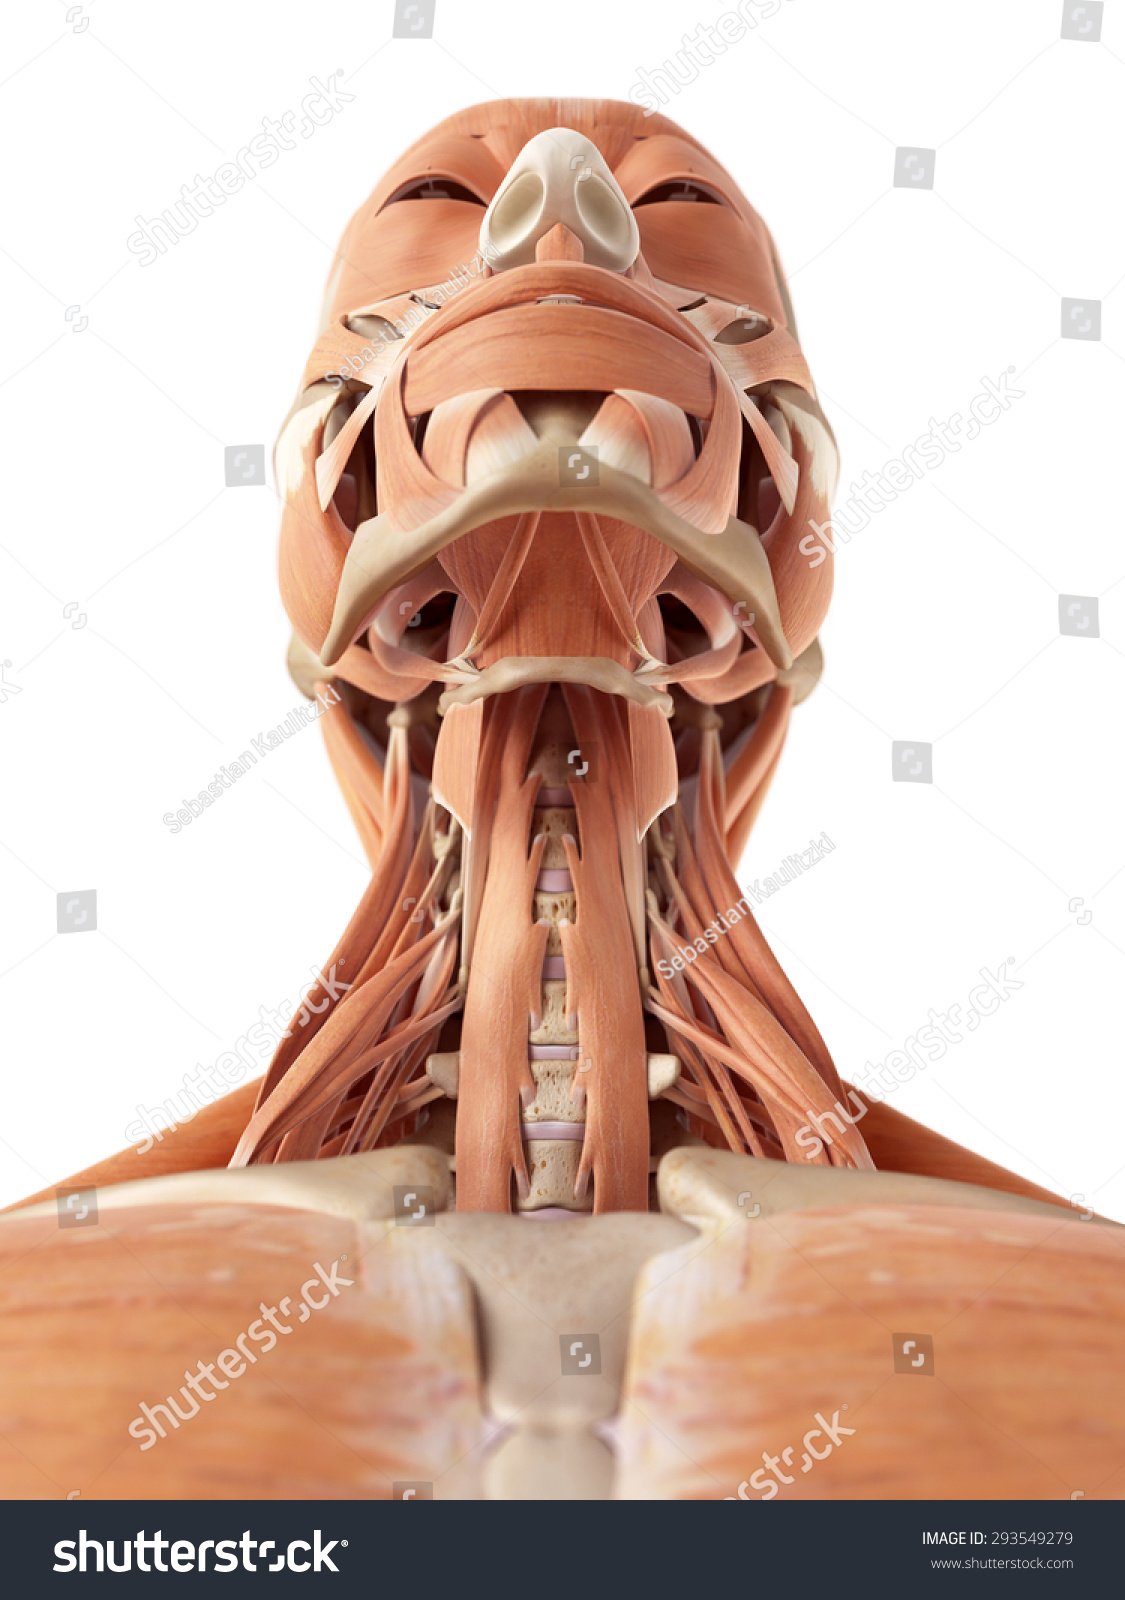 Medical Accurate Illustration Neck Muscles Stock Illustration